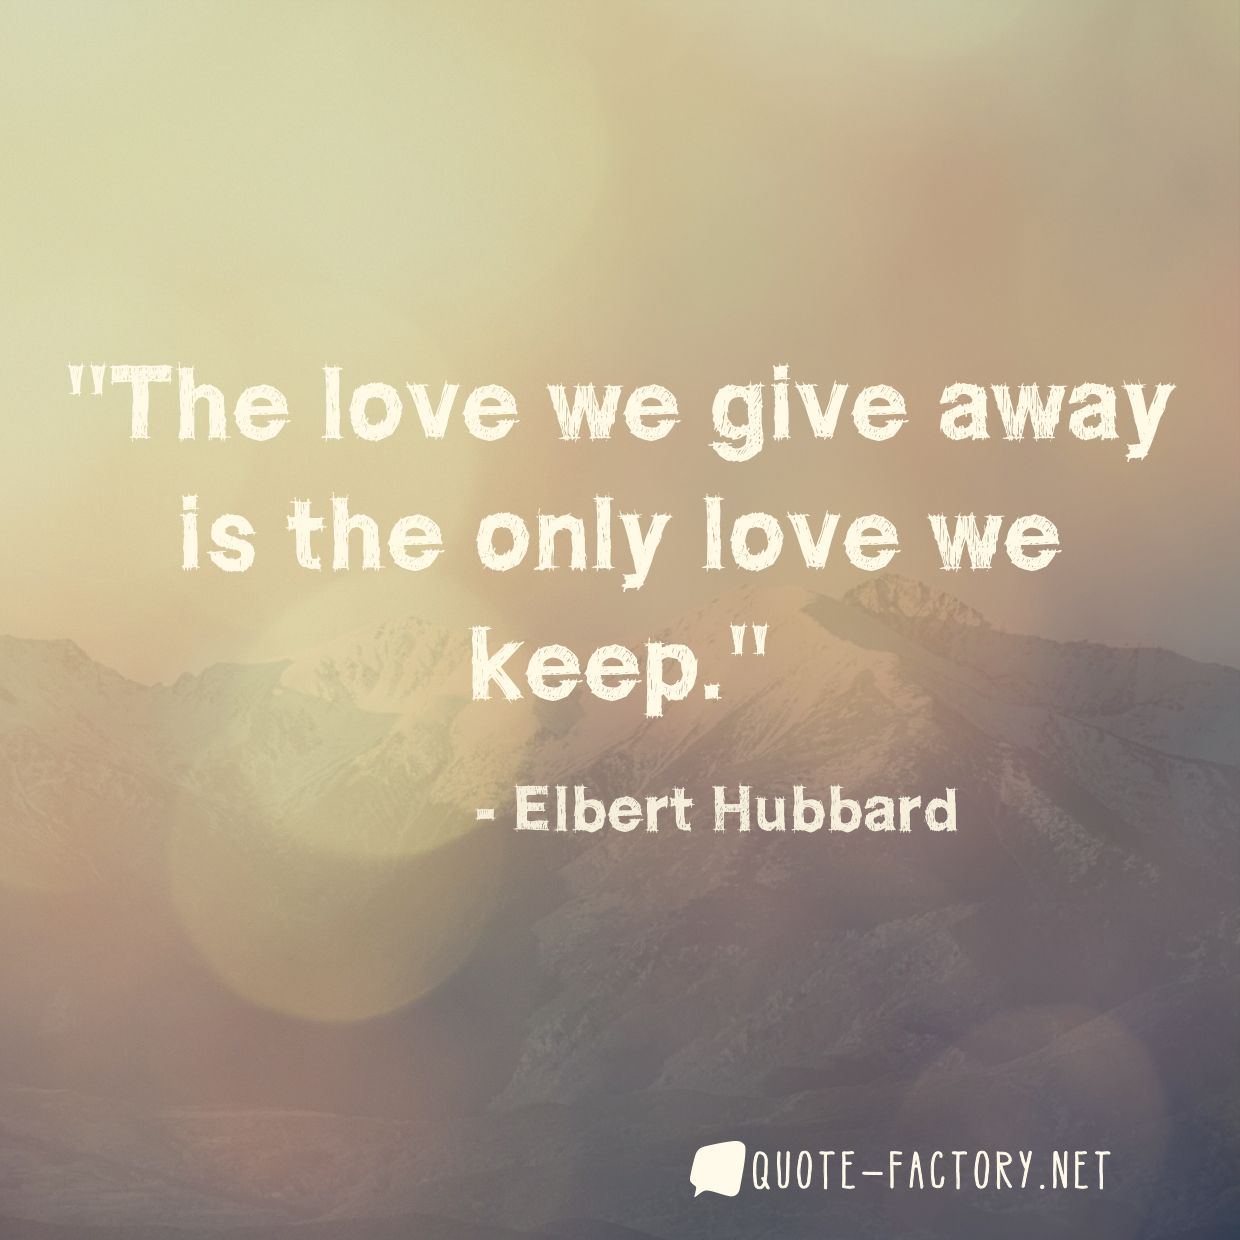 The love we give away is the only love we keep.